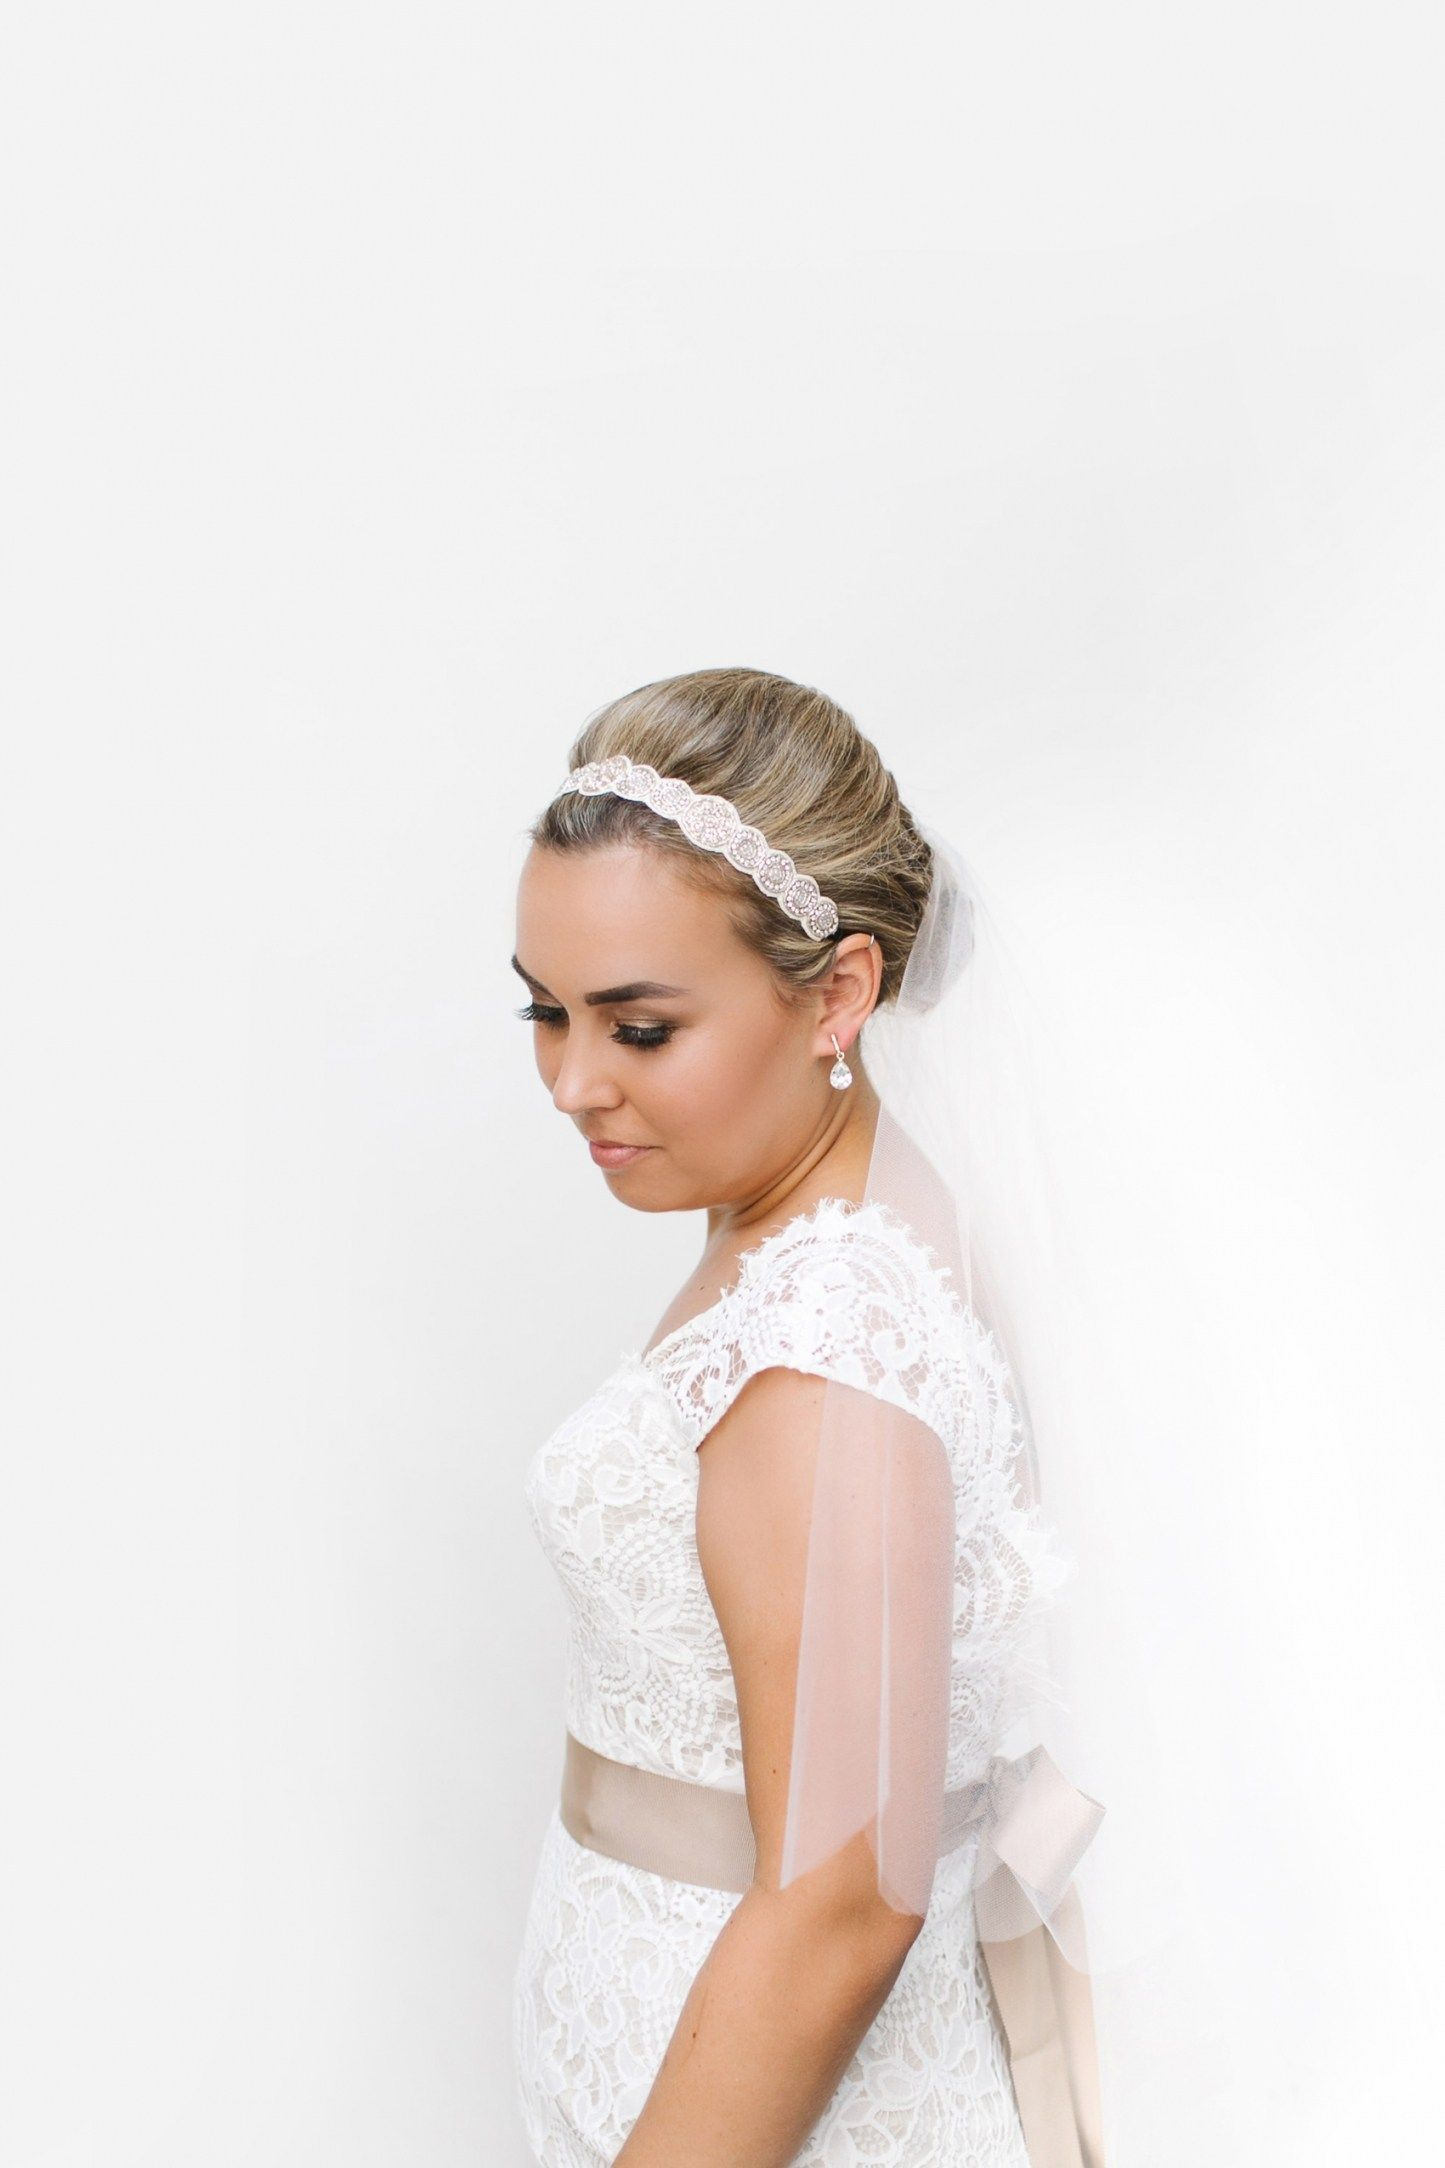 wedding hair and makeup lancaster pa   hairstyles ideas for me